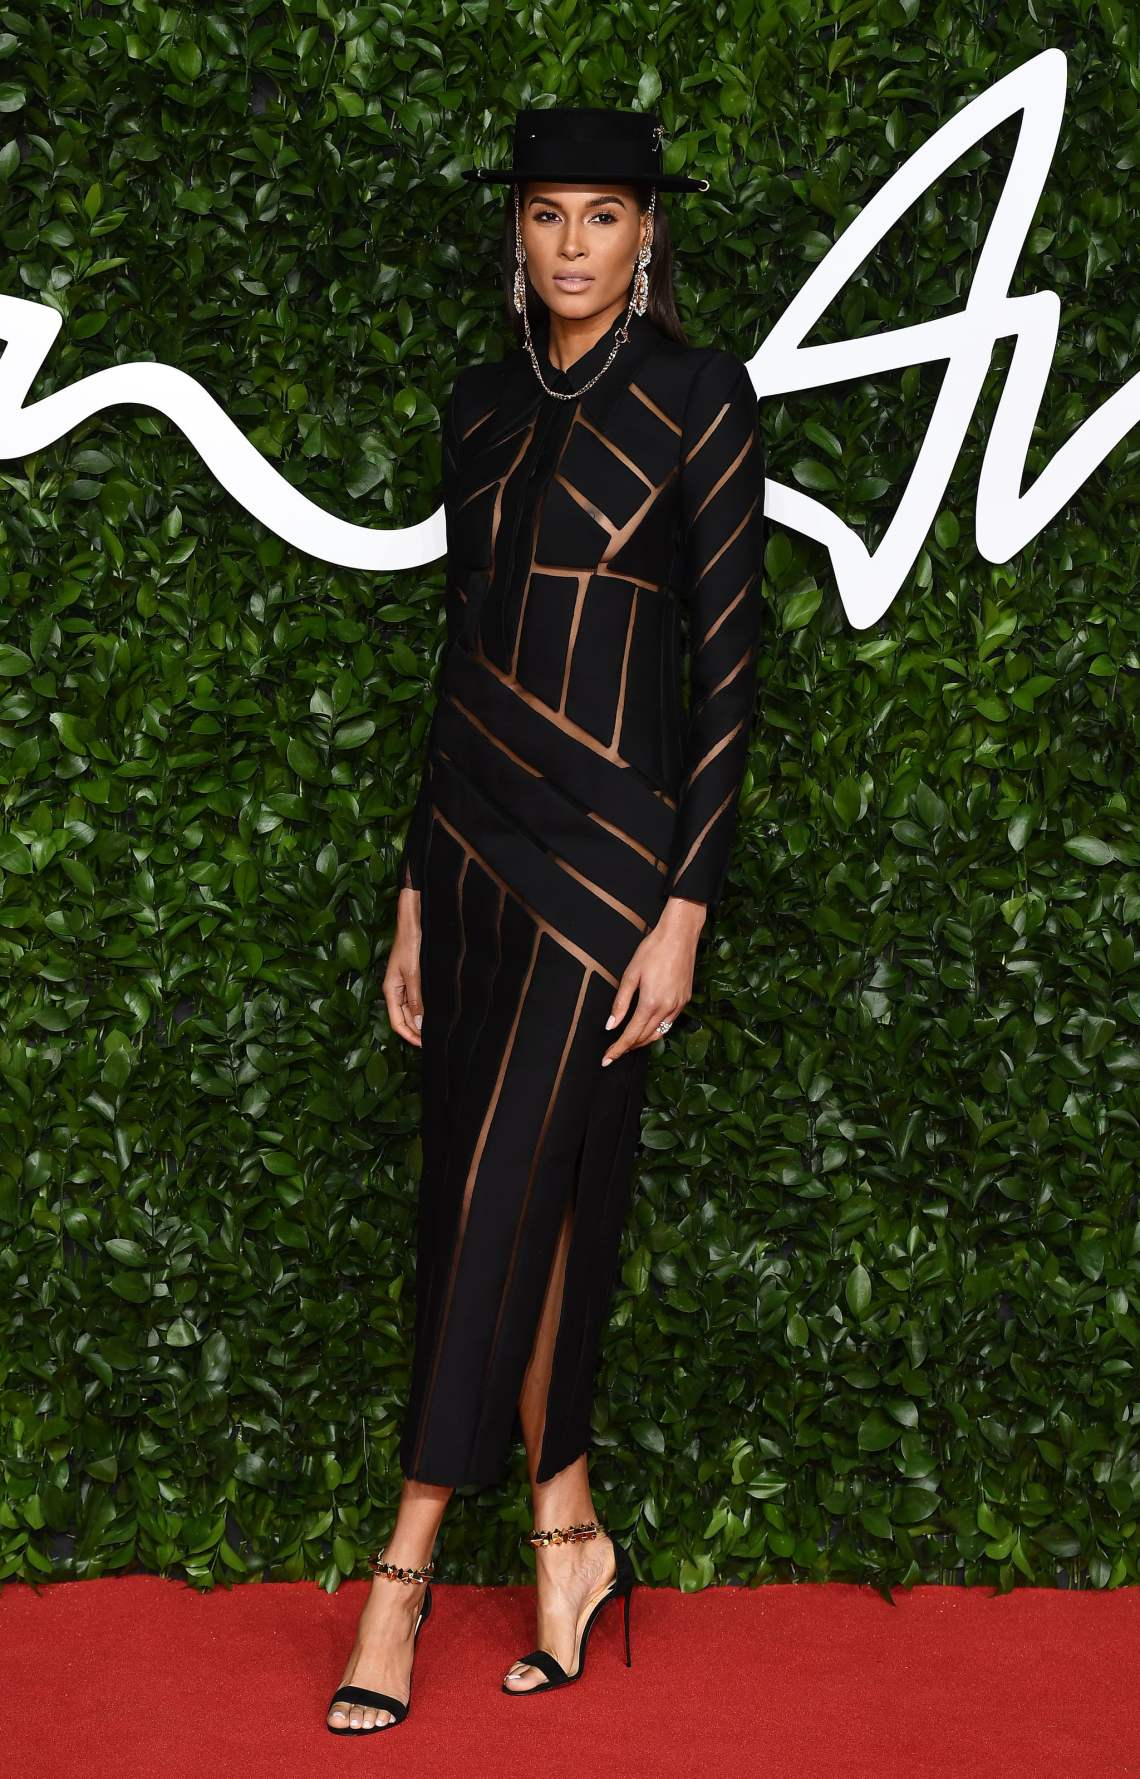 Cindy-Bruna-at-British-Fashion-Awards-2019-in-London